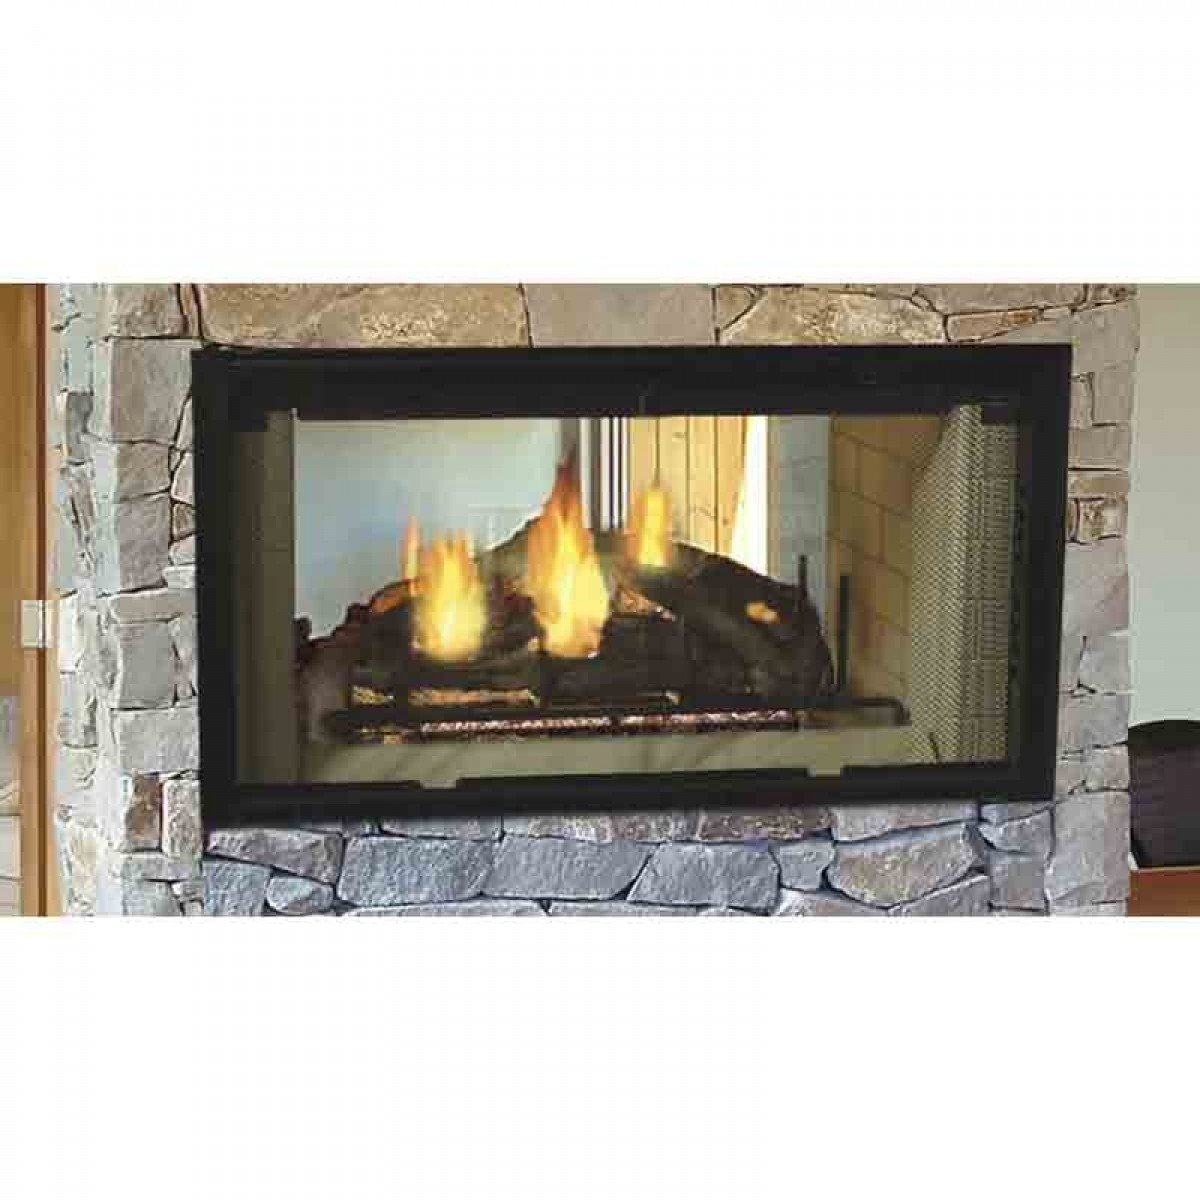 Majestic Designer See-Through Wood Burning Fireplace